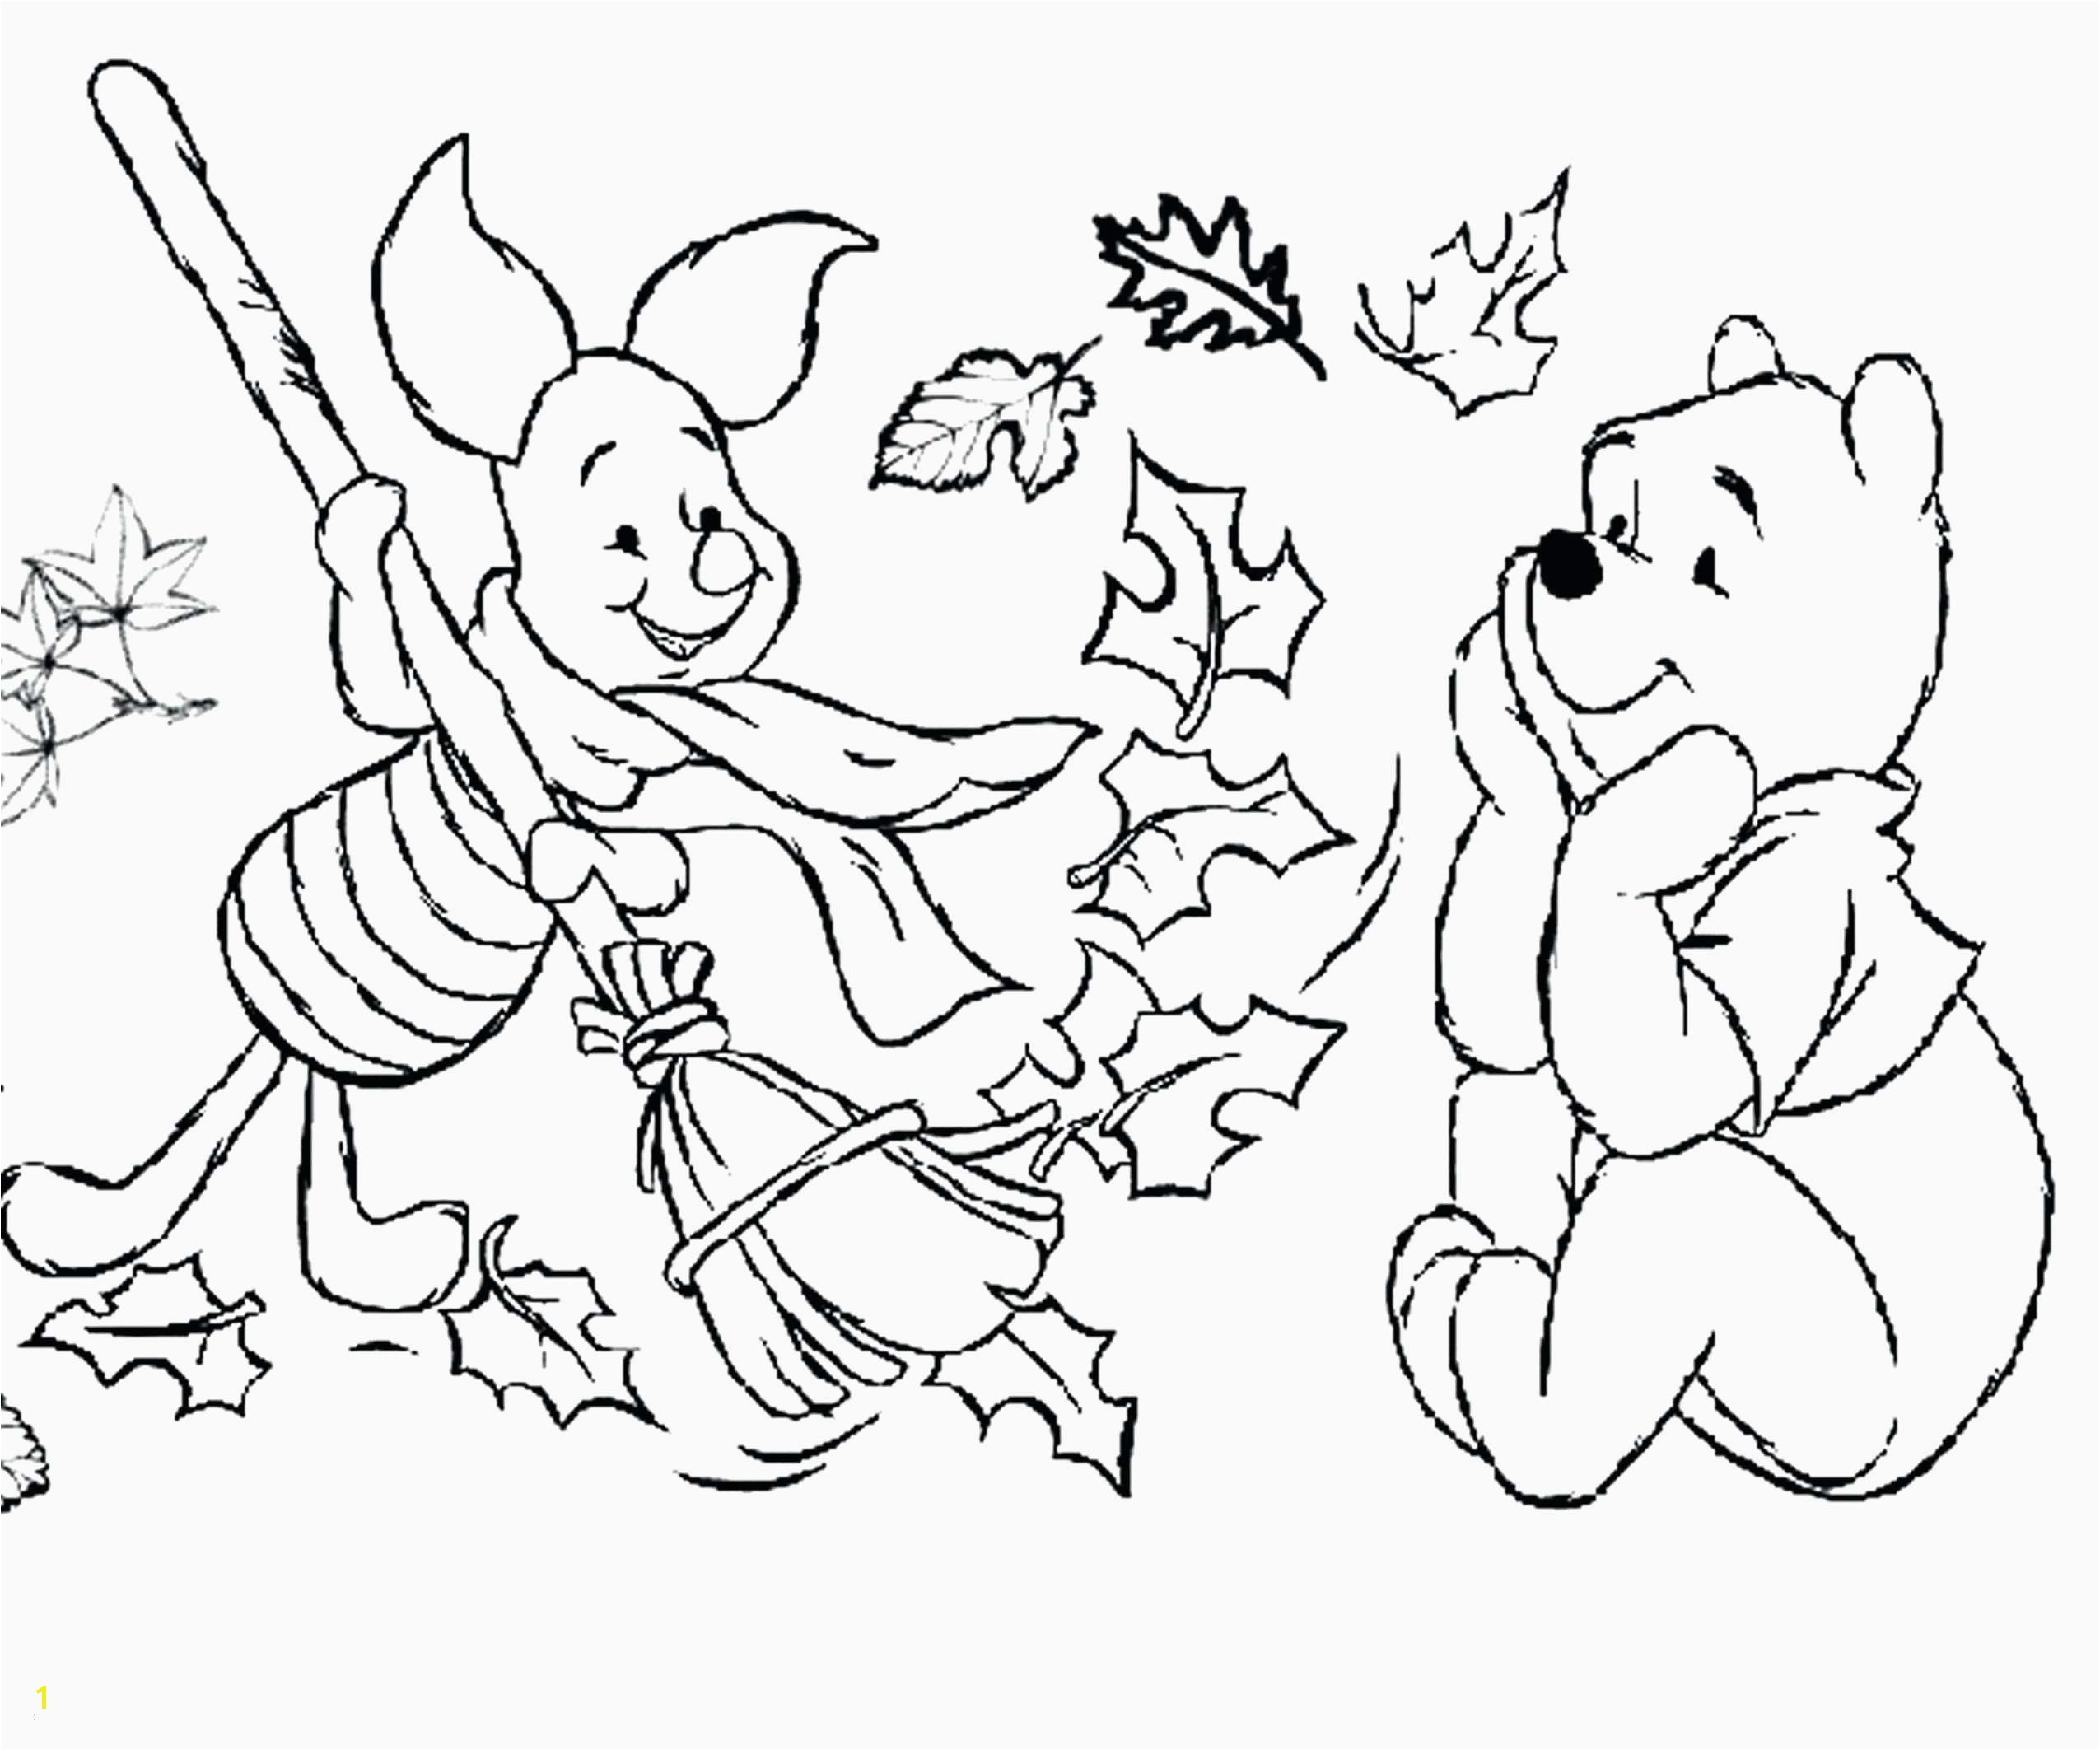 35 Anime Fox Girl Coloring Pages Download